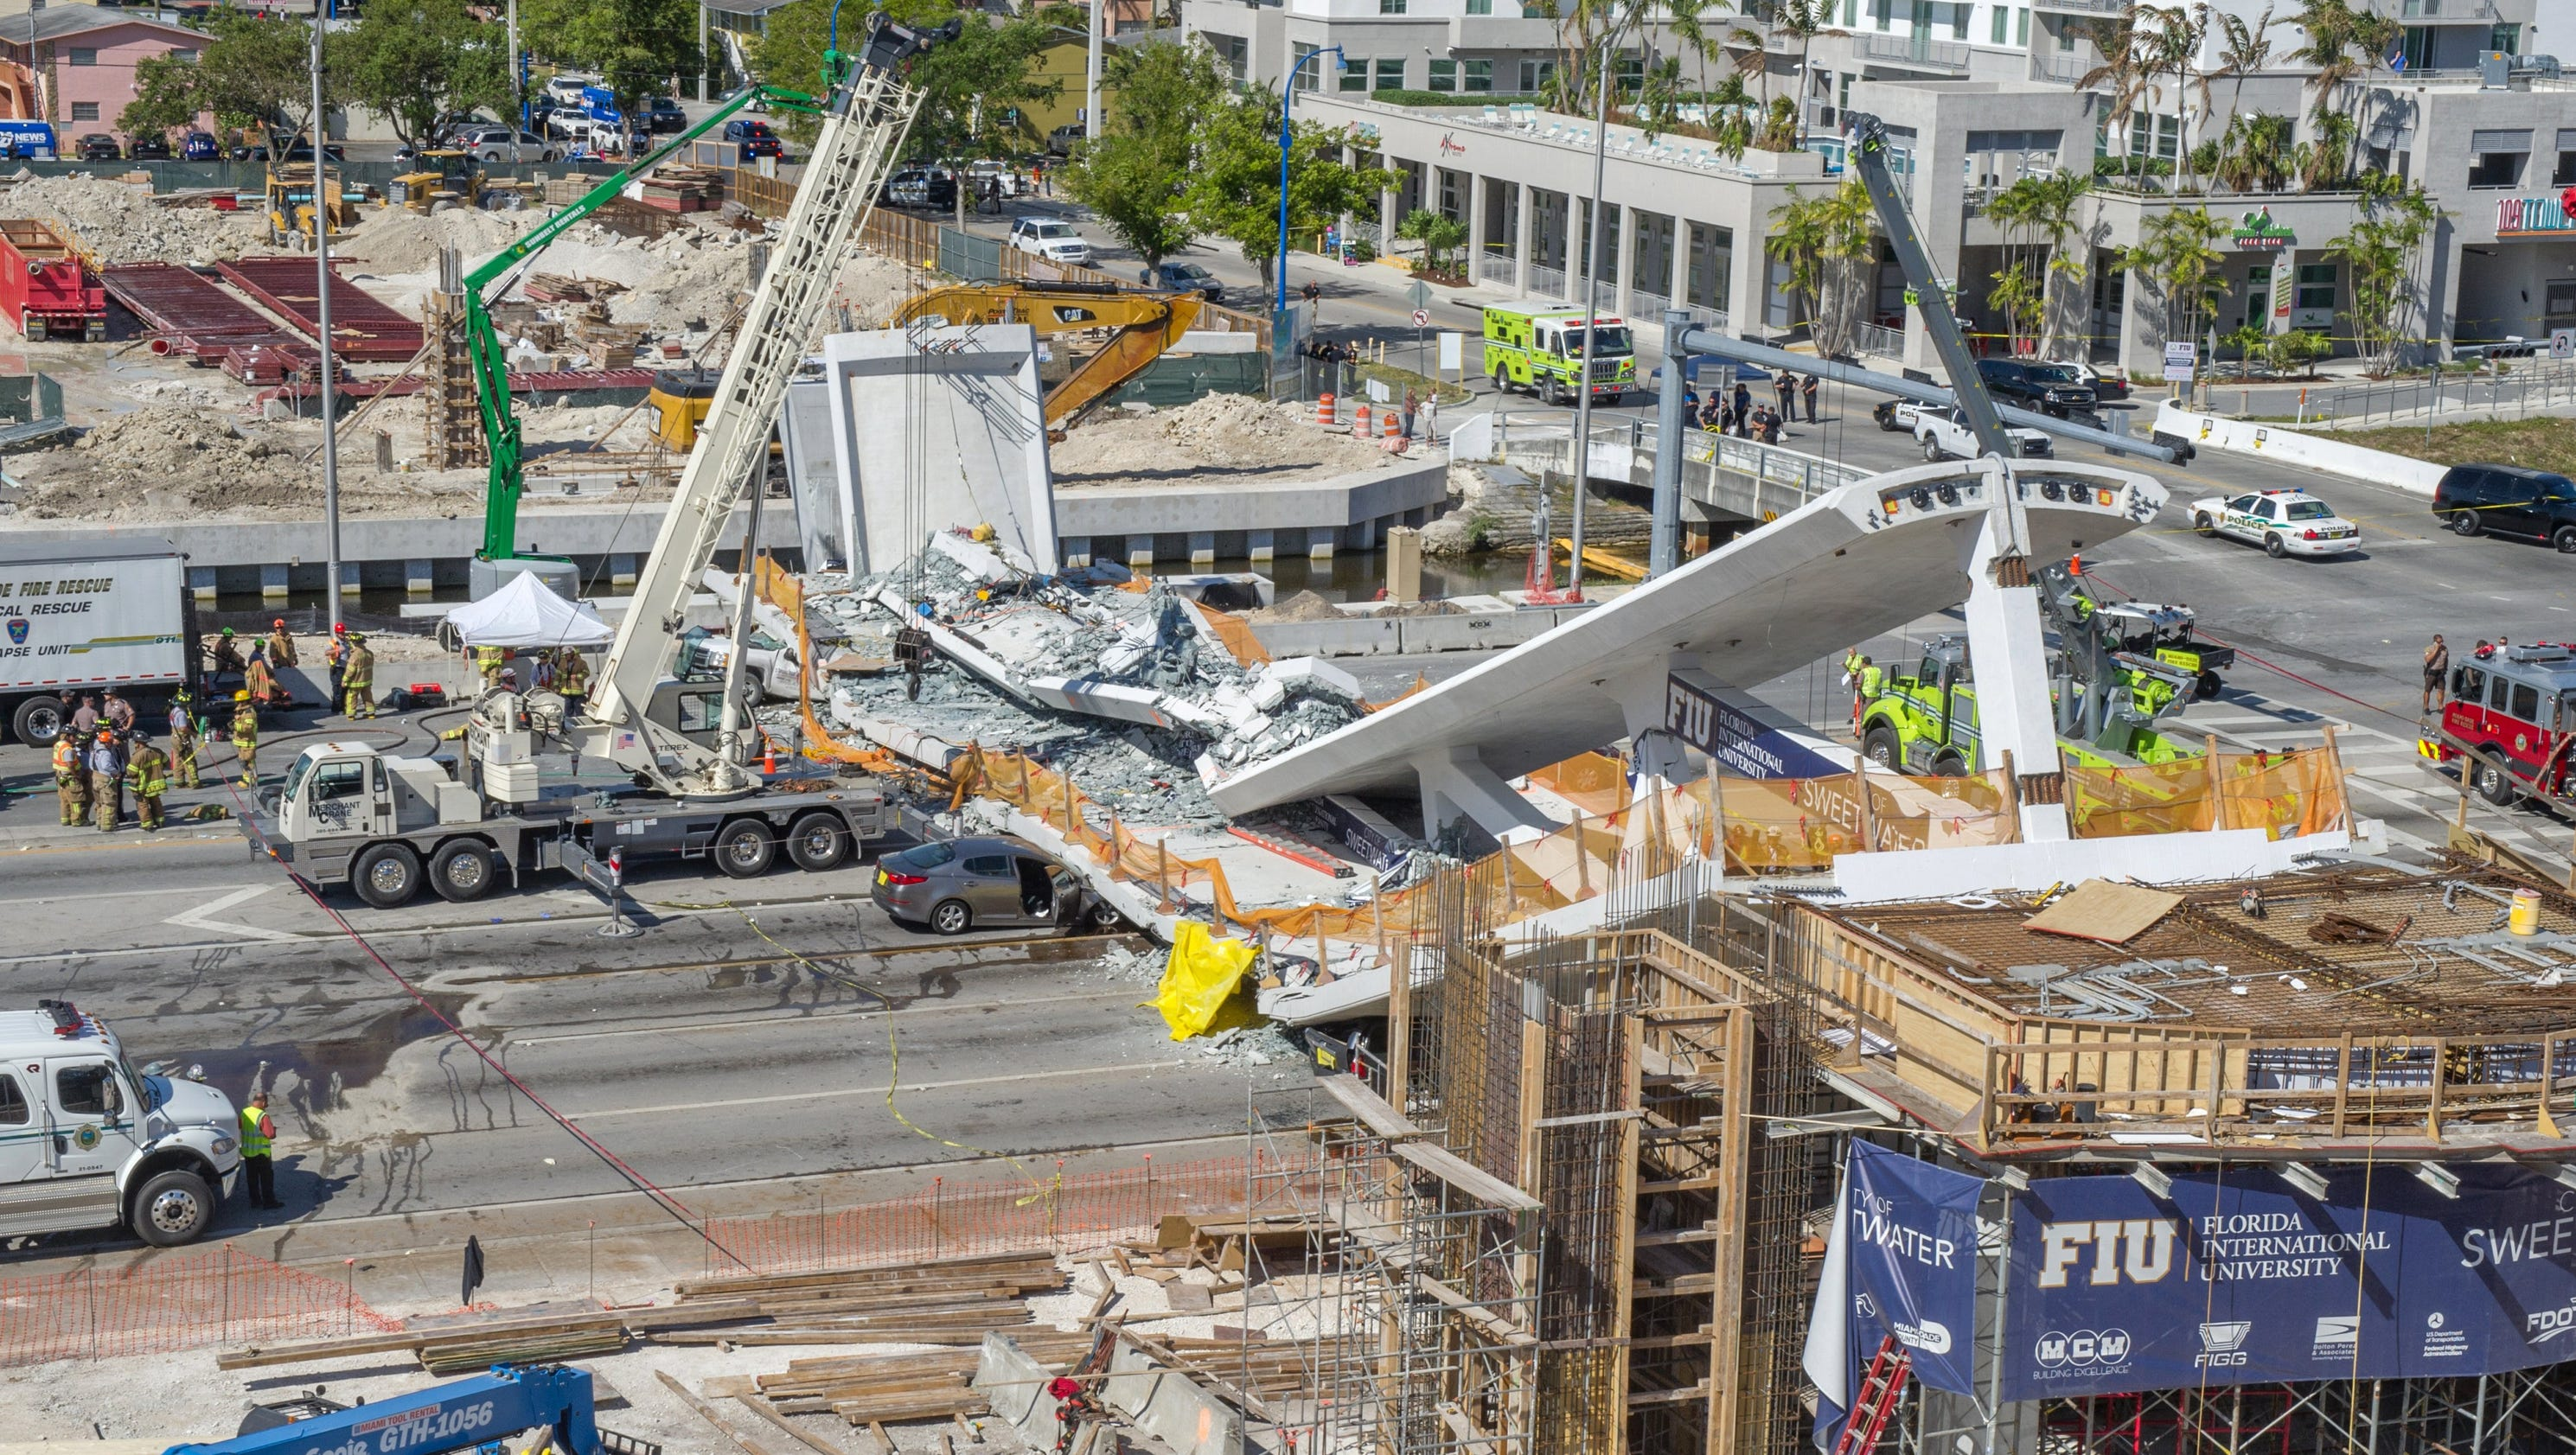 Miami bridge that collapsed was a truss design, despite the cosmetic tower, support cables